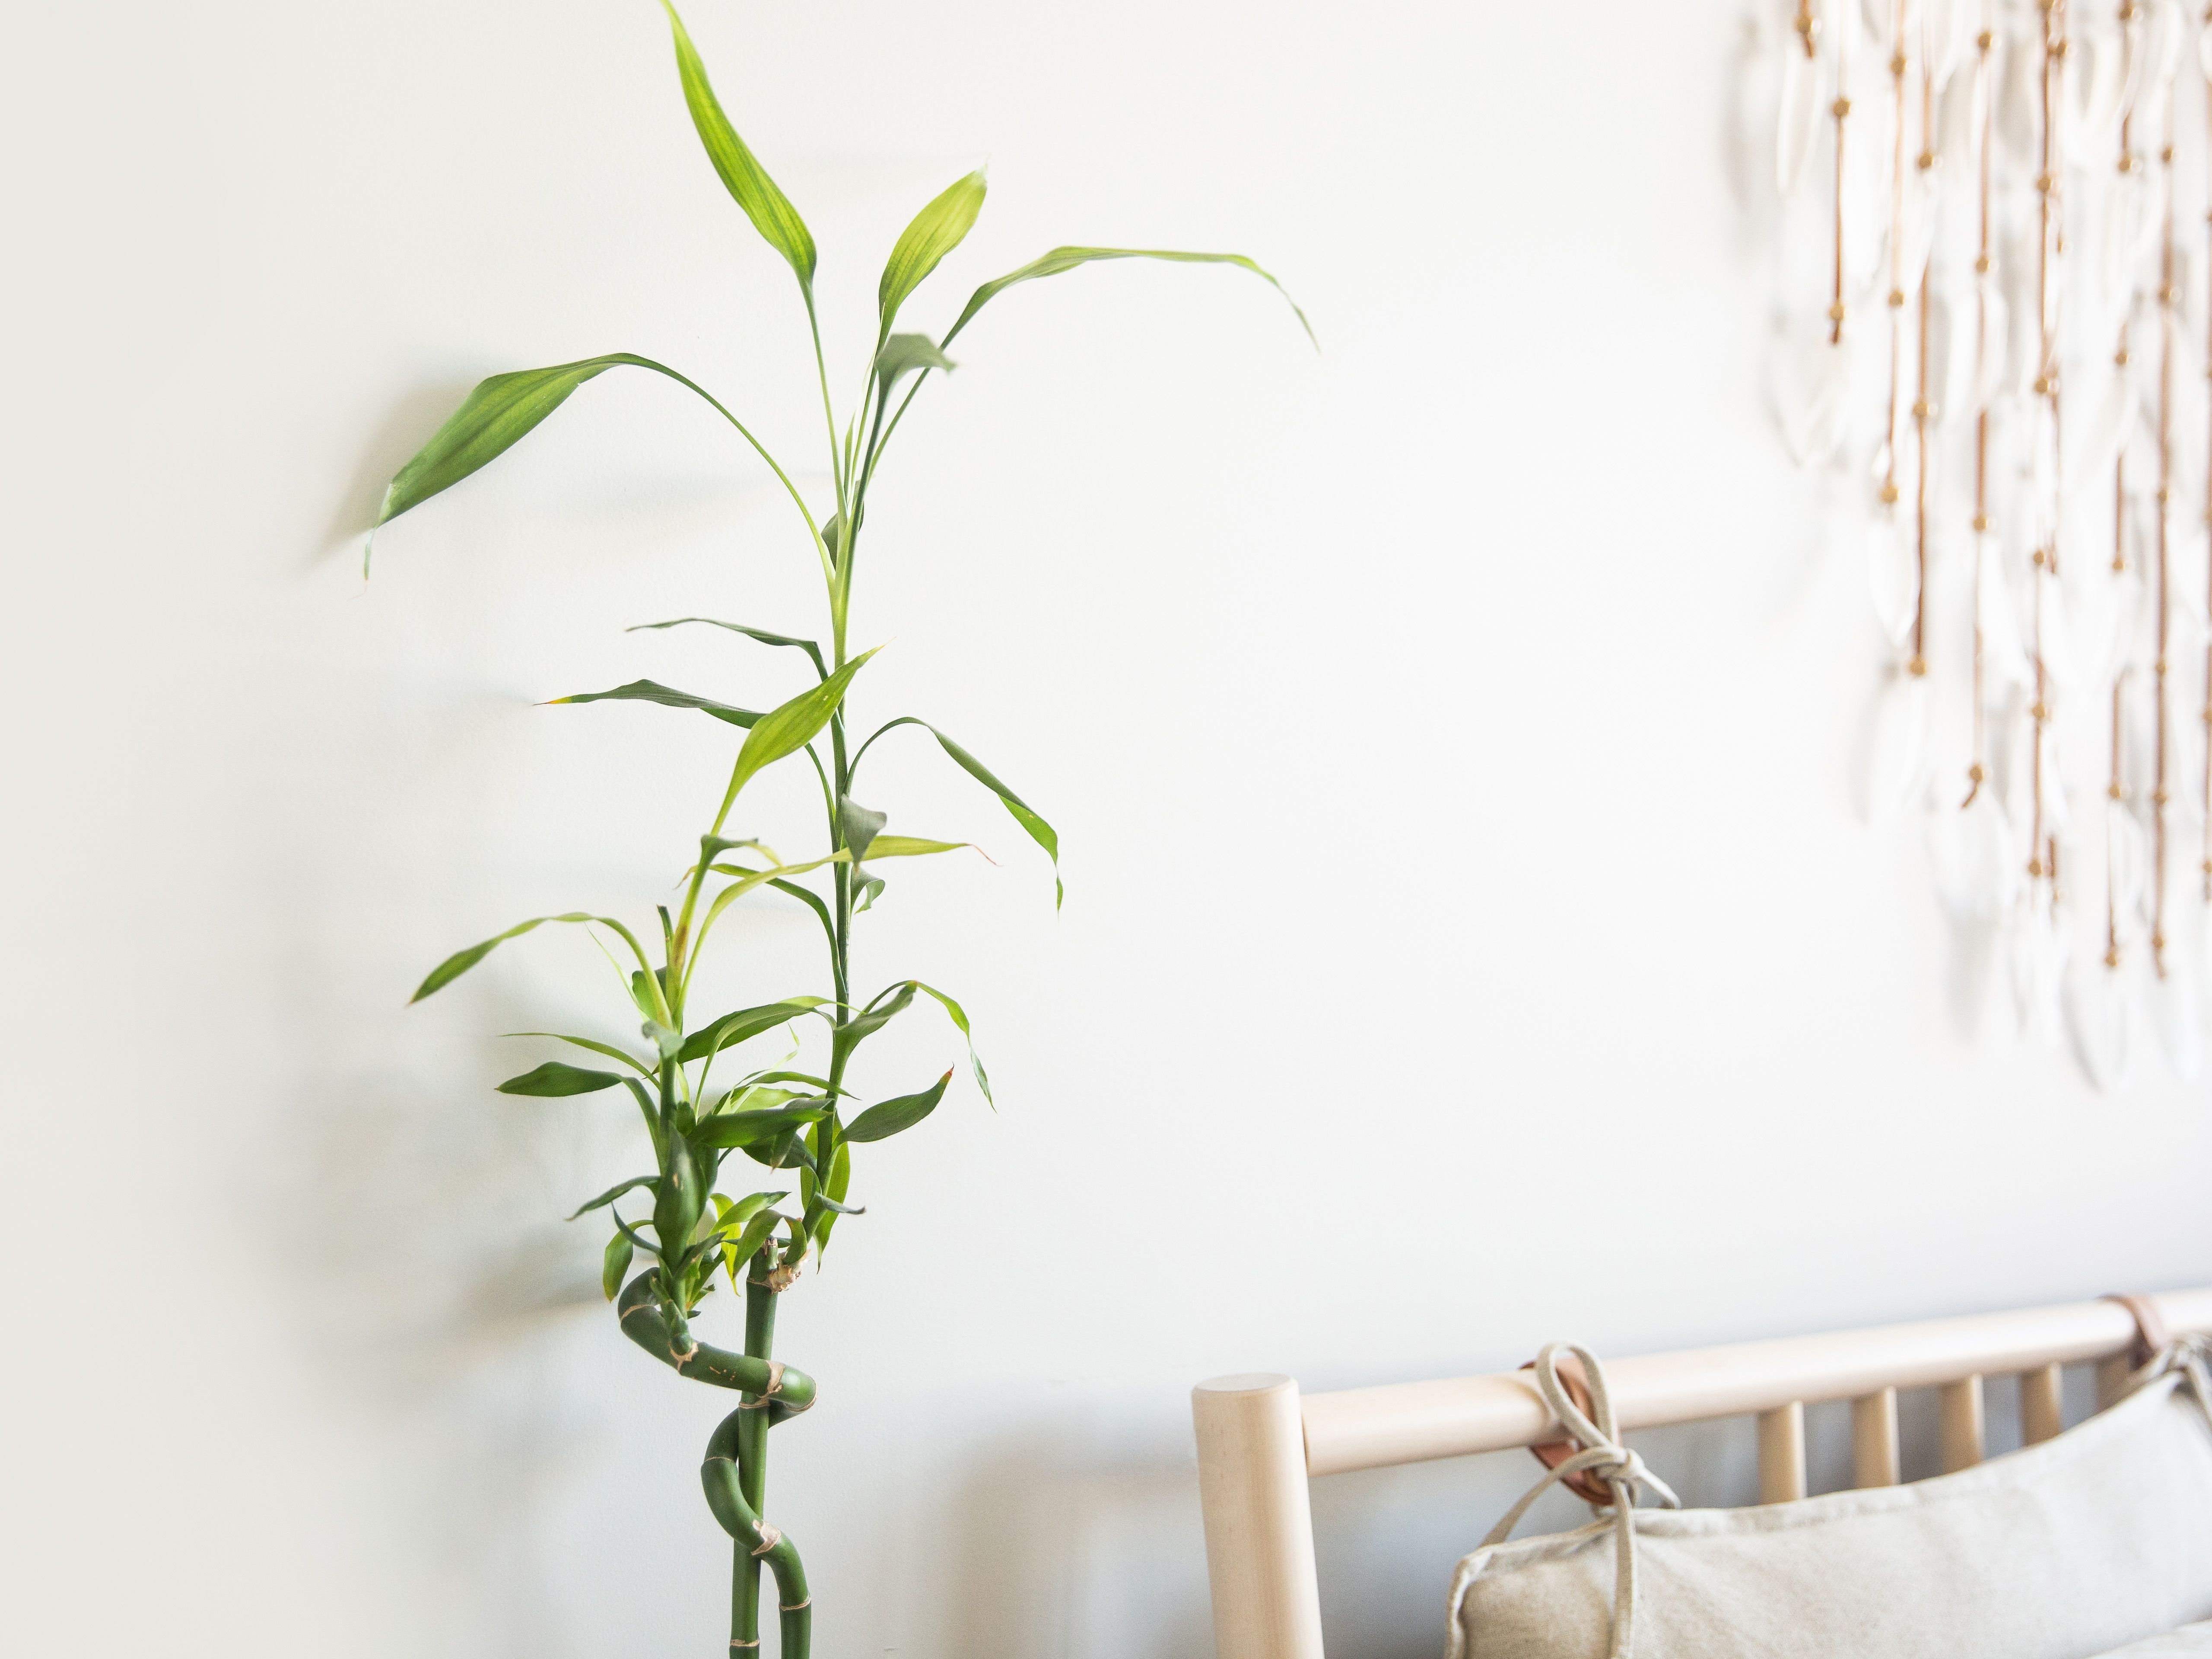 Bamboo Indoor Plant Care Growing Guide